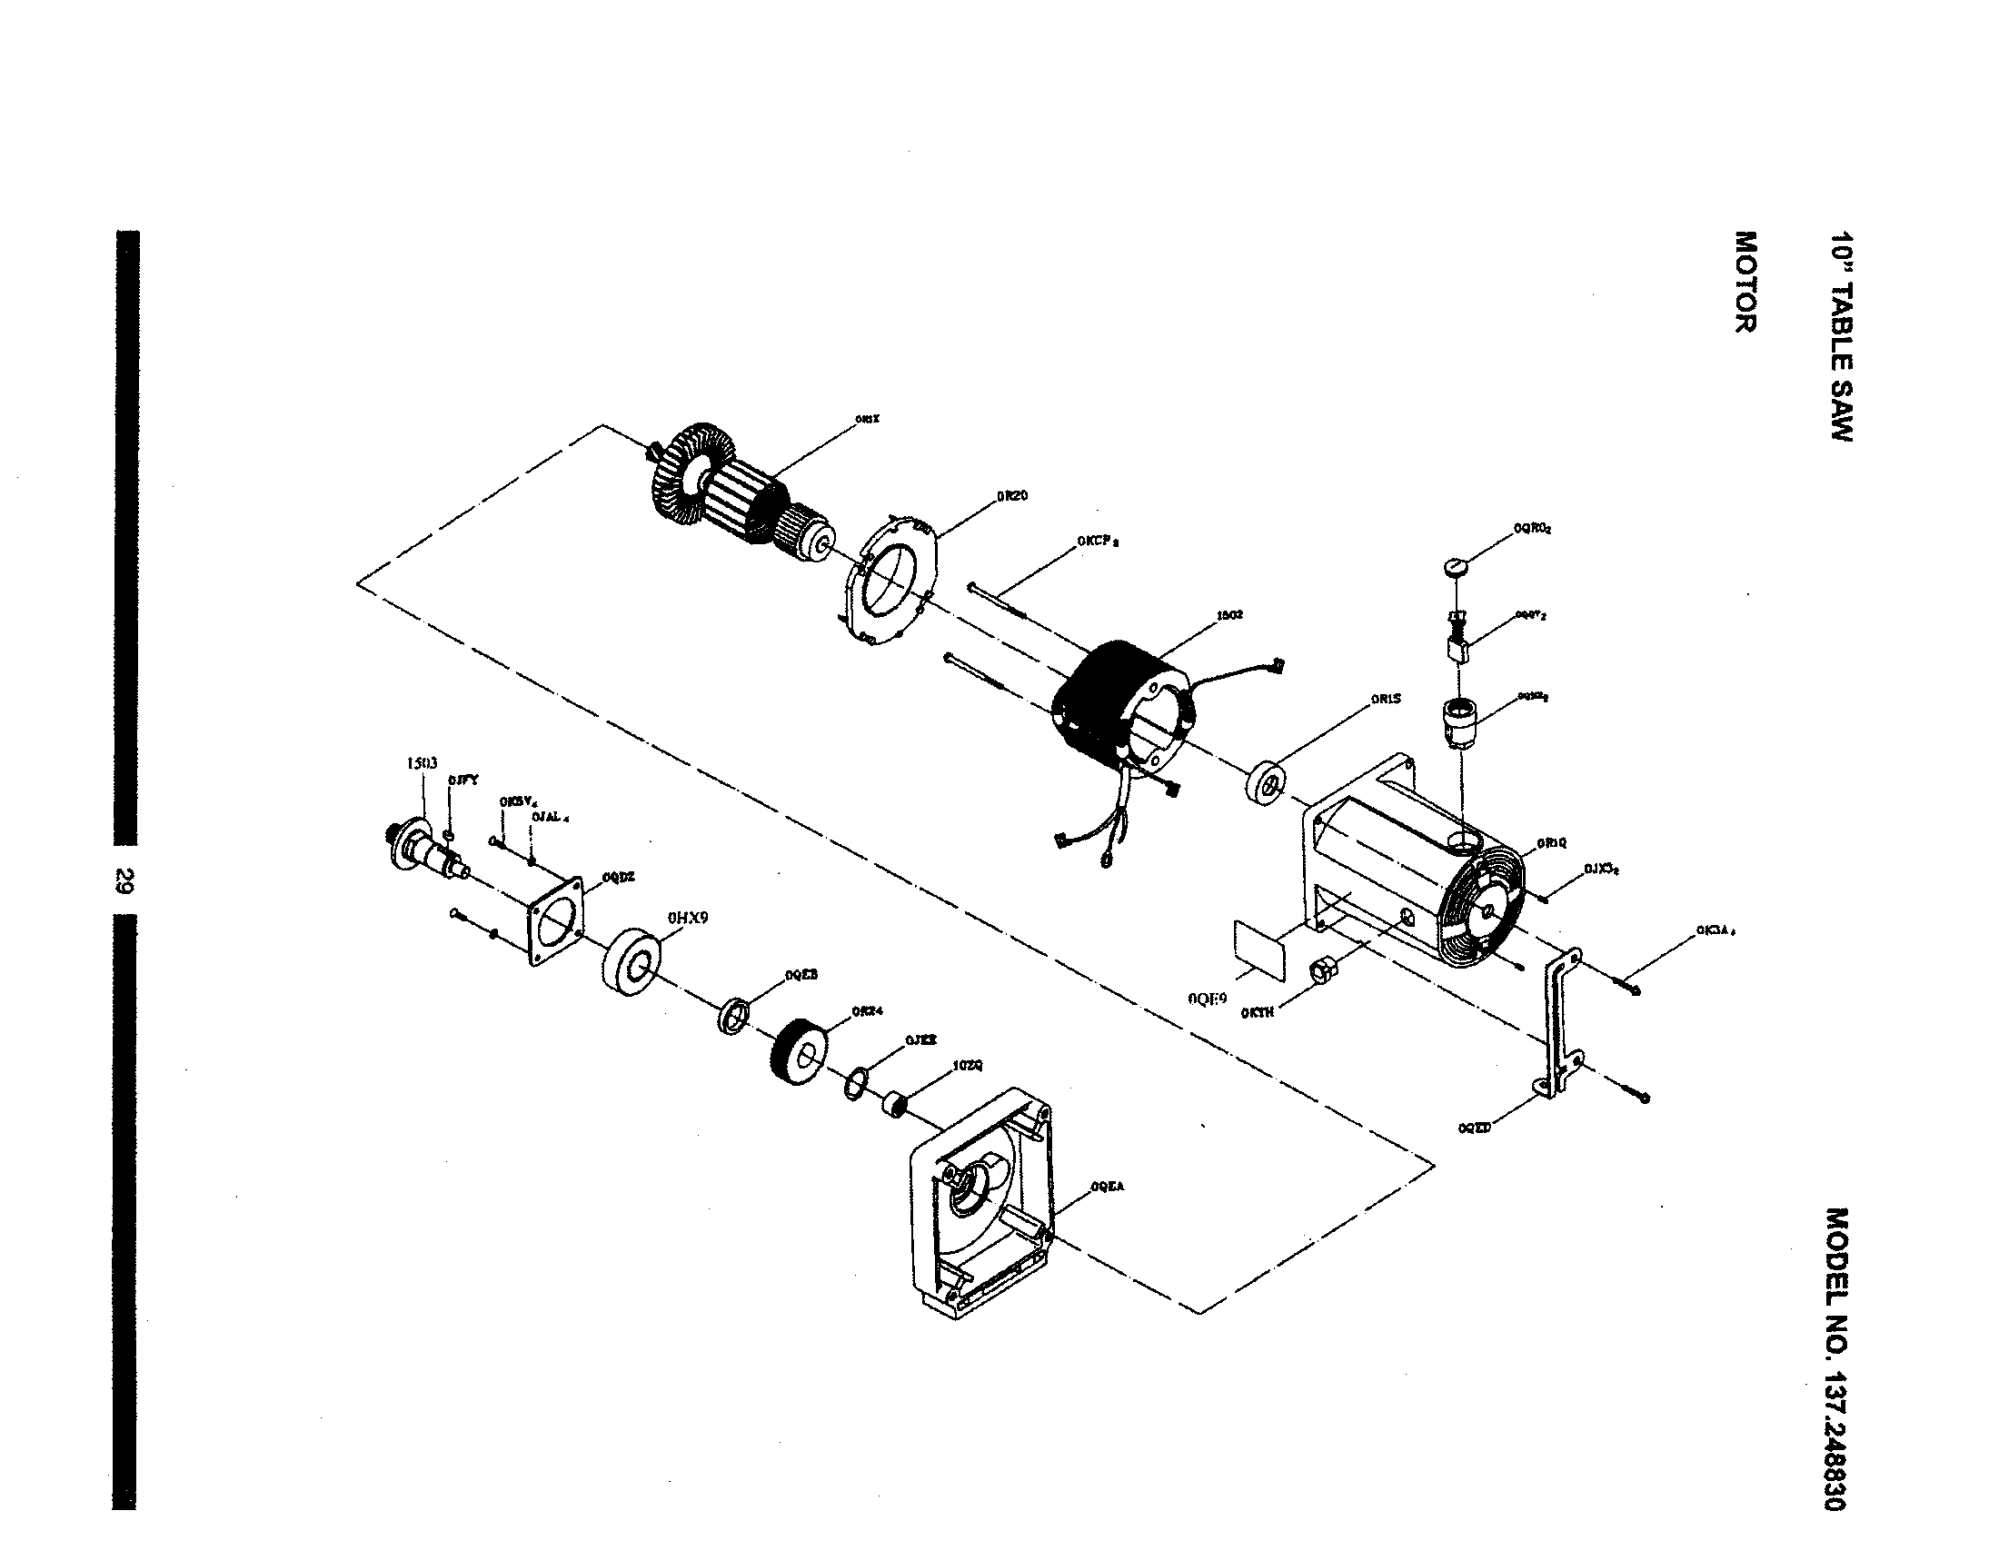 hight resolution of wiring diagram for craftsman table saw 137 248830